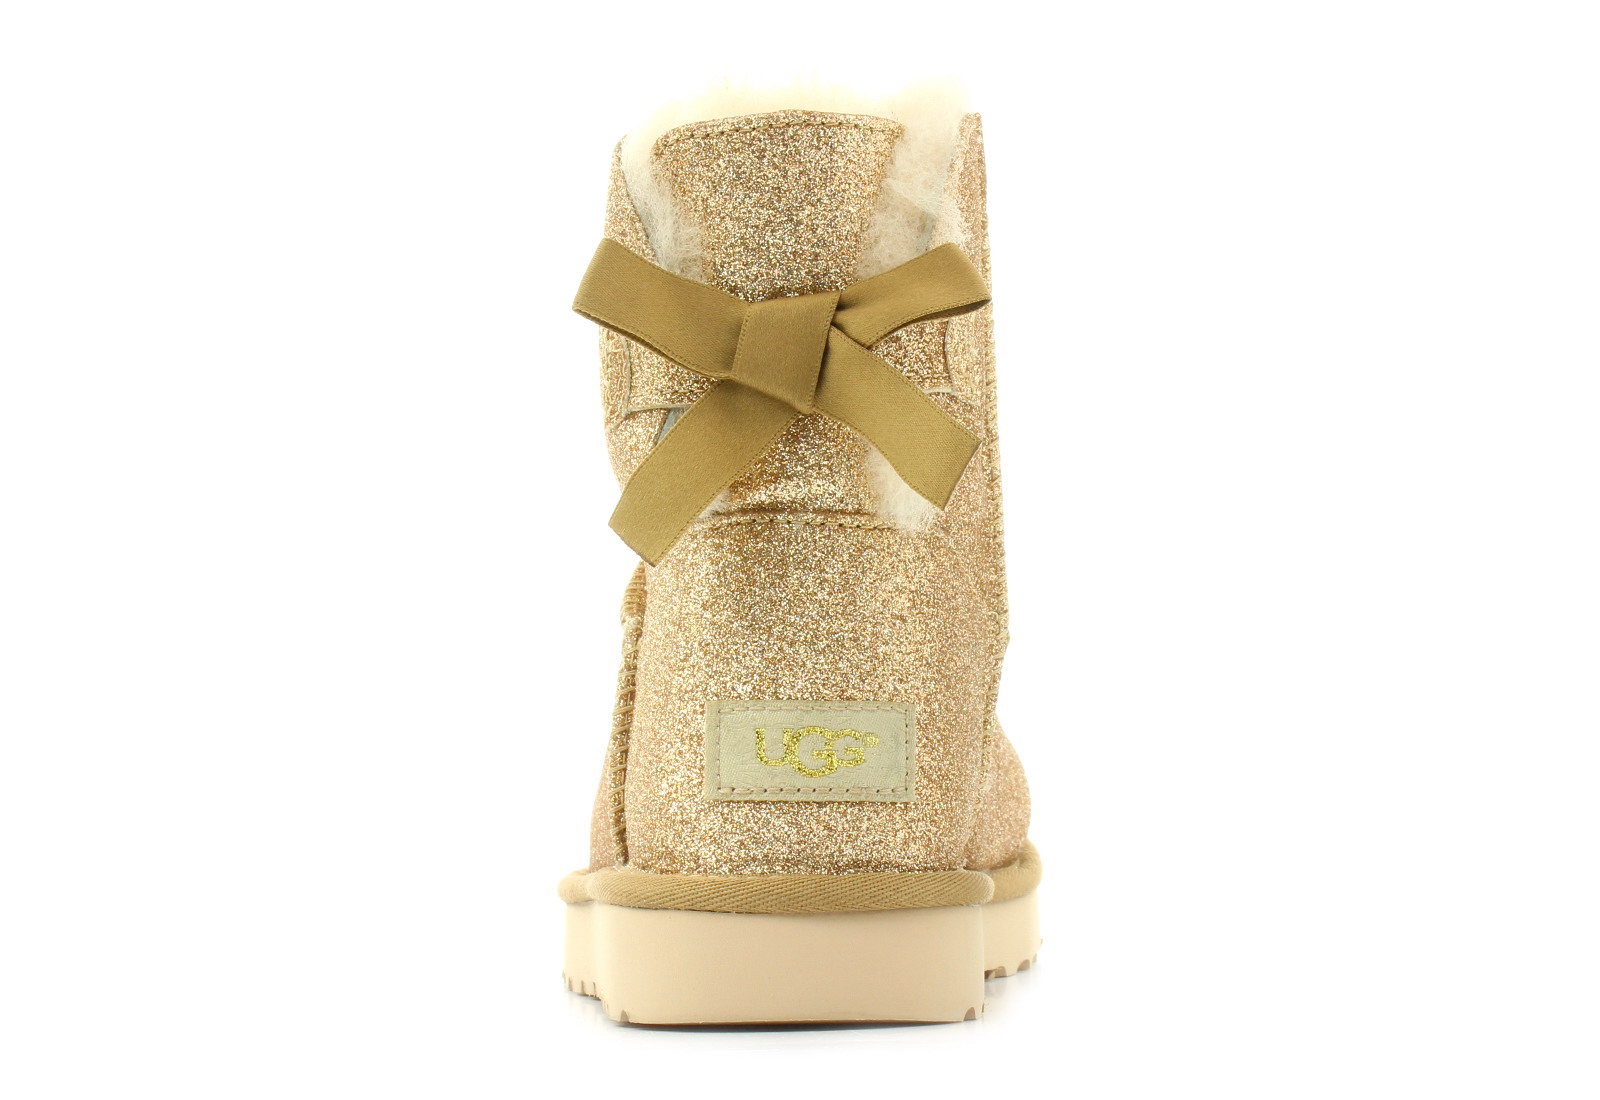 b7531c8fbf3 Ugg Boots - Mini Bailey Bow Sparkle - 1100053-gold - Online shop for  sneakers, shoes and boots